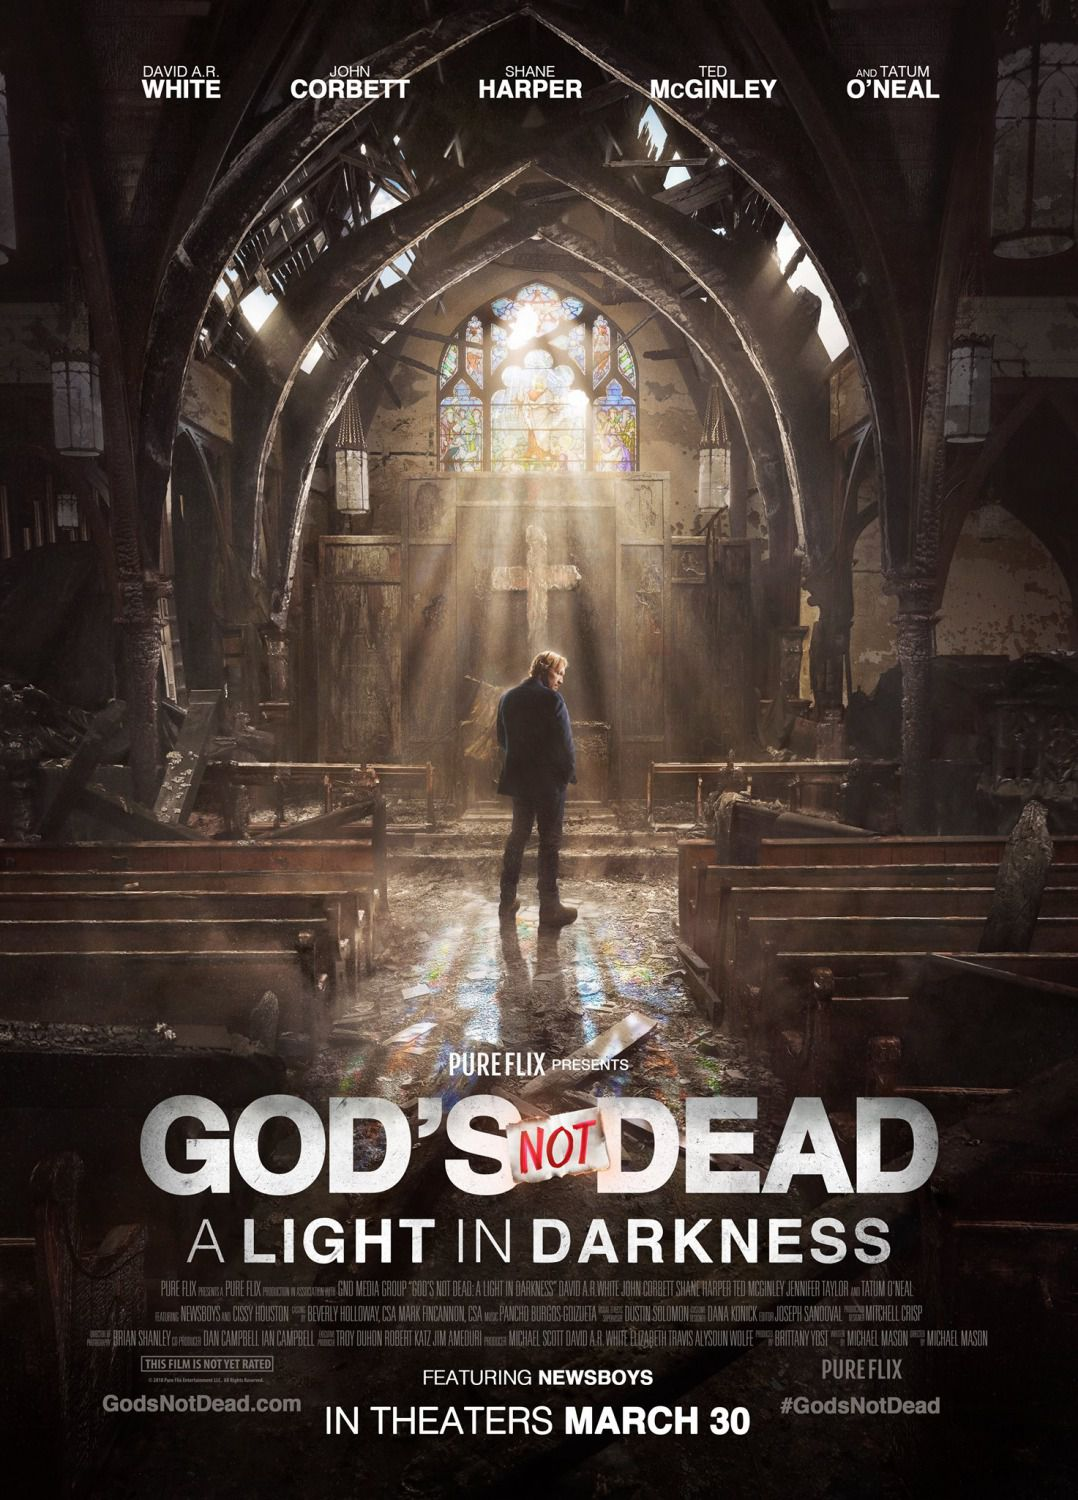 Gods not Dead a Light in Darkness - David A R White, John Corbett, Shane Harper, Ted McGinley, Tatum O Neal